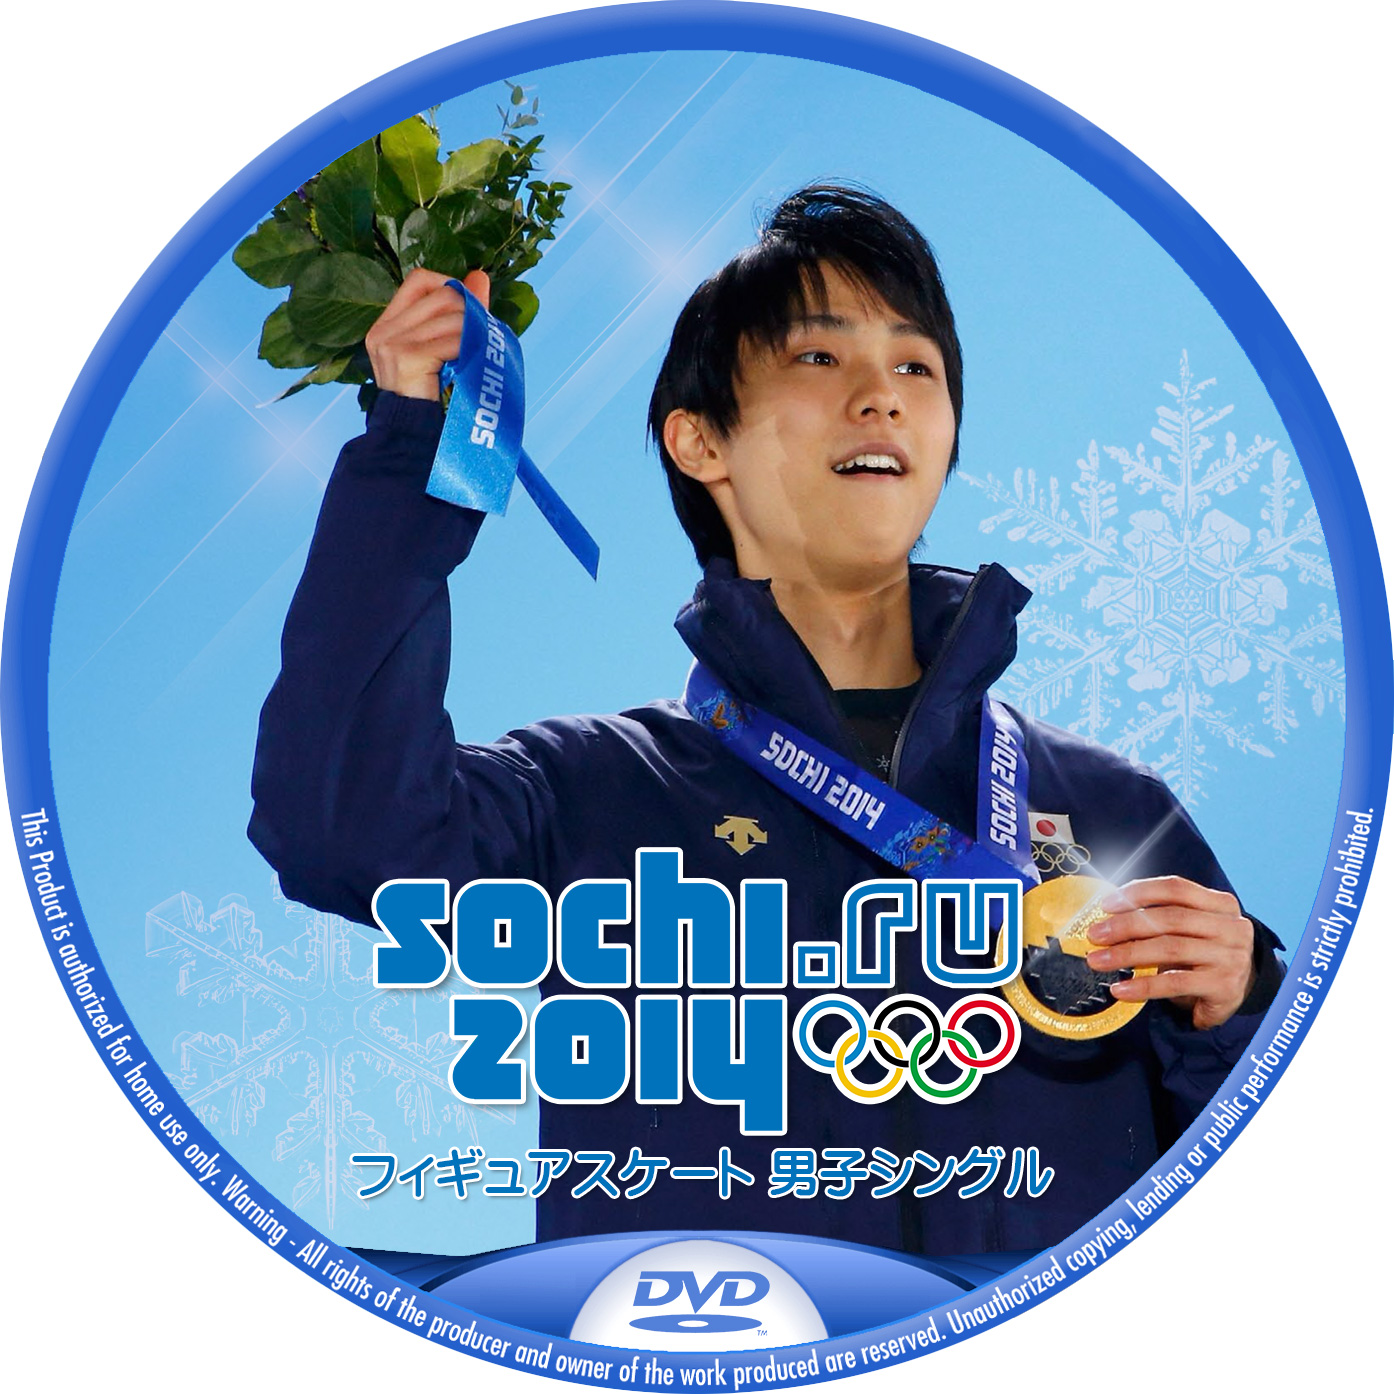 Sochi_Figure_Mens-DVD3